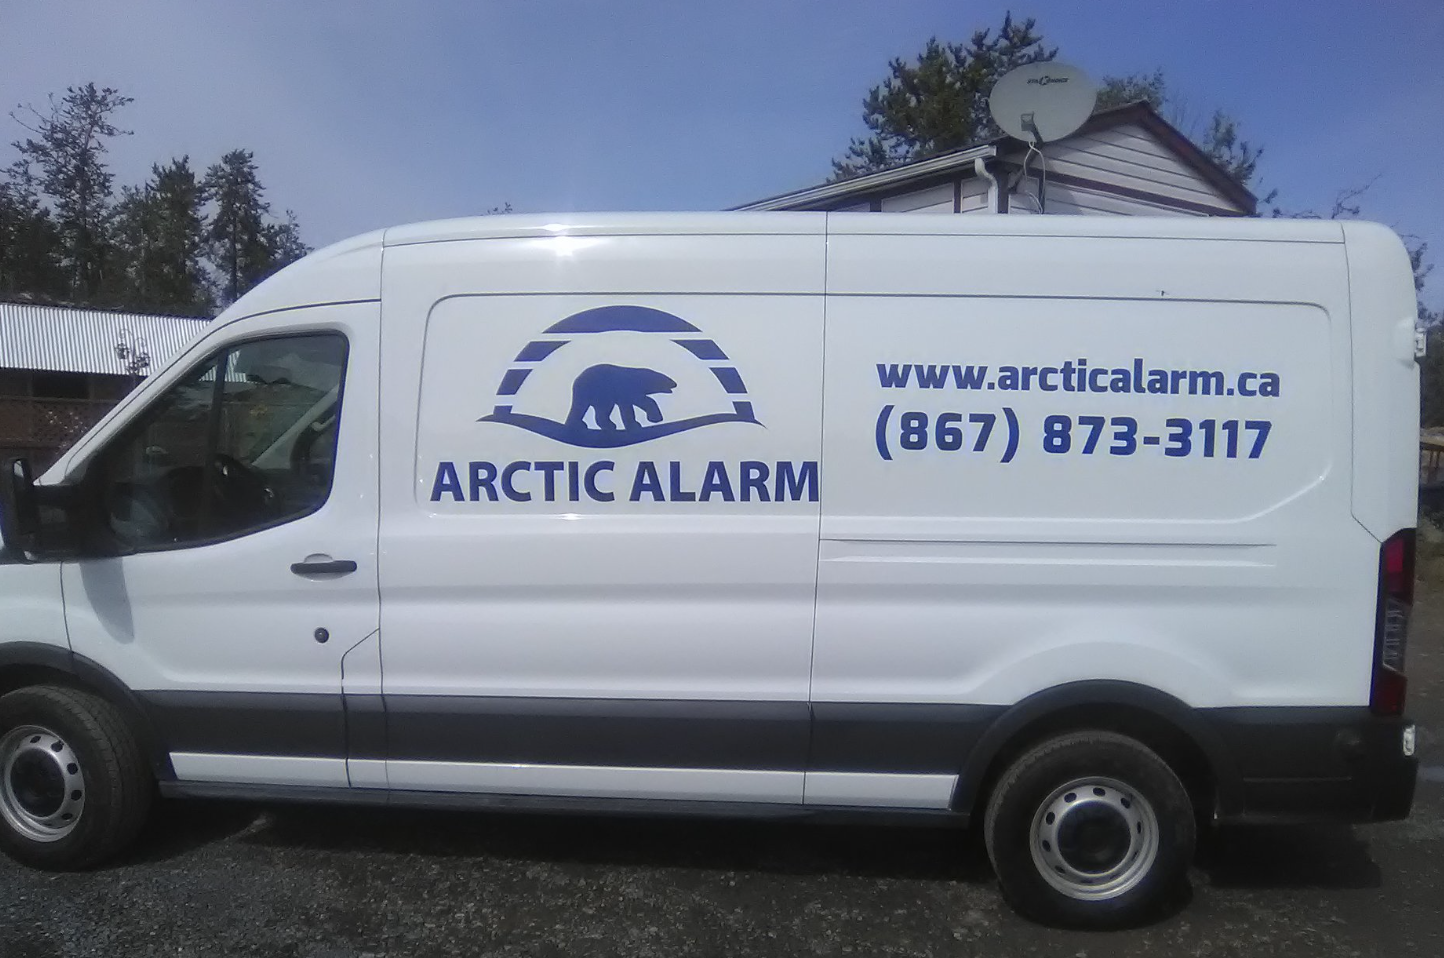 Arctic Alarm Commercial Vehicle Decals